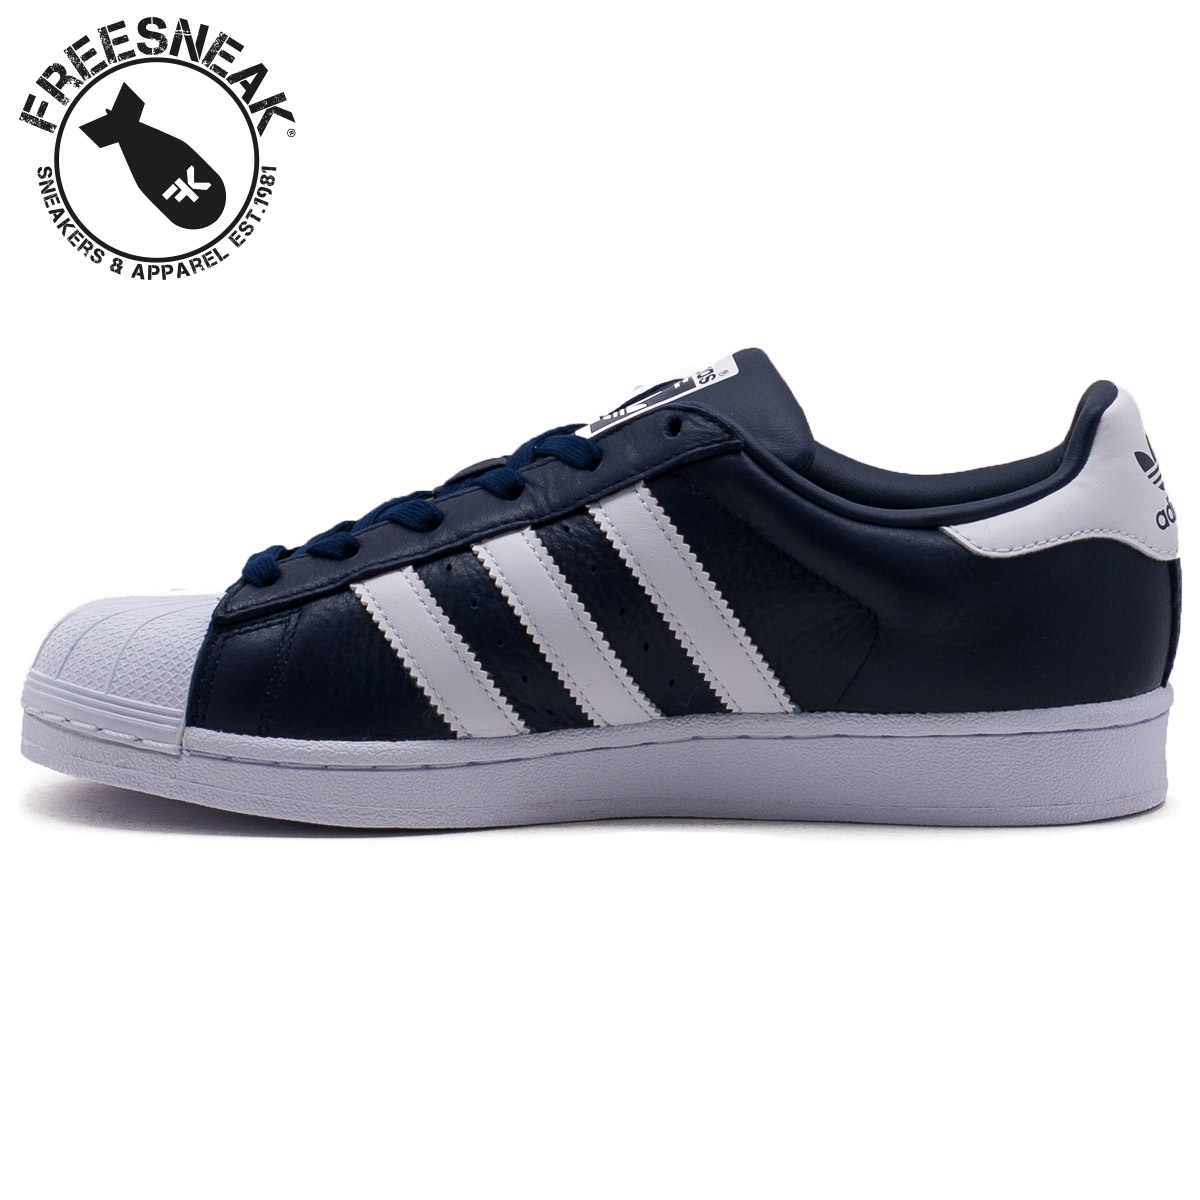 low priced f836c 7e714 Adidas   Superstar Leather Blue White   BB2239